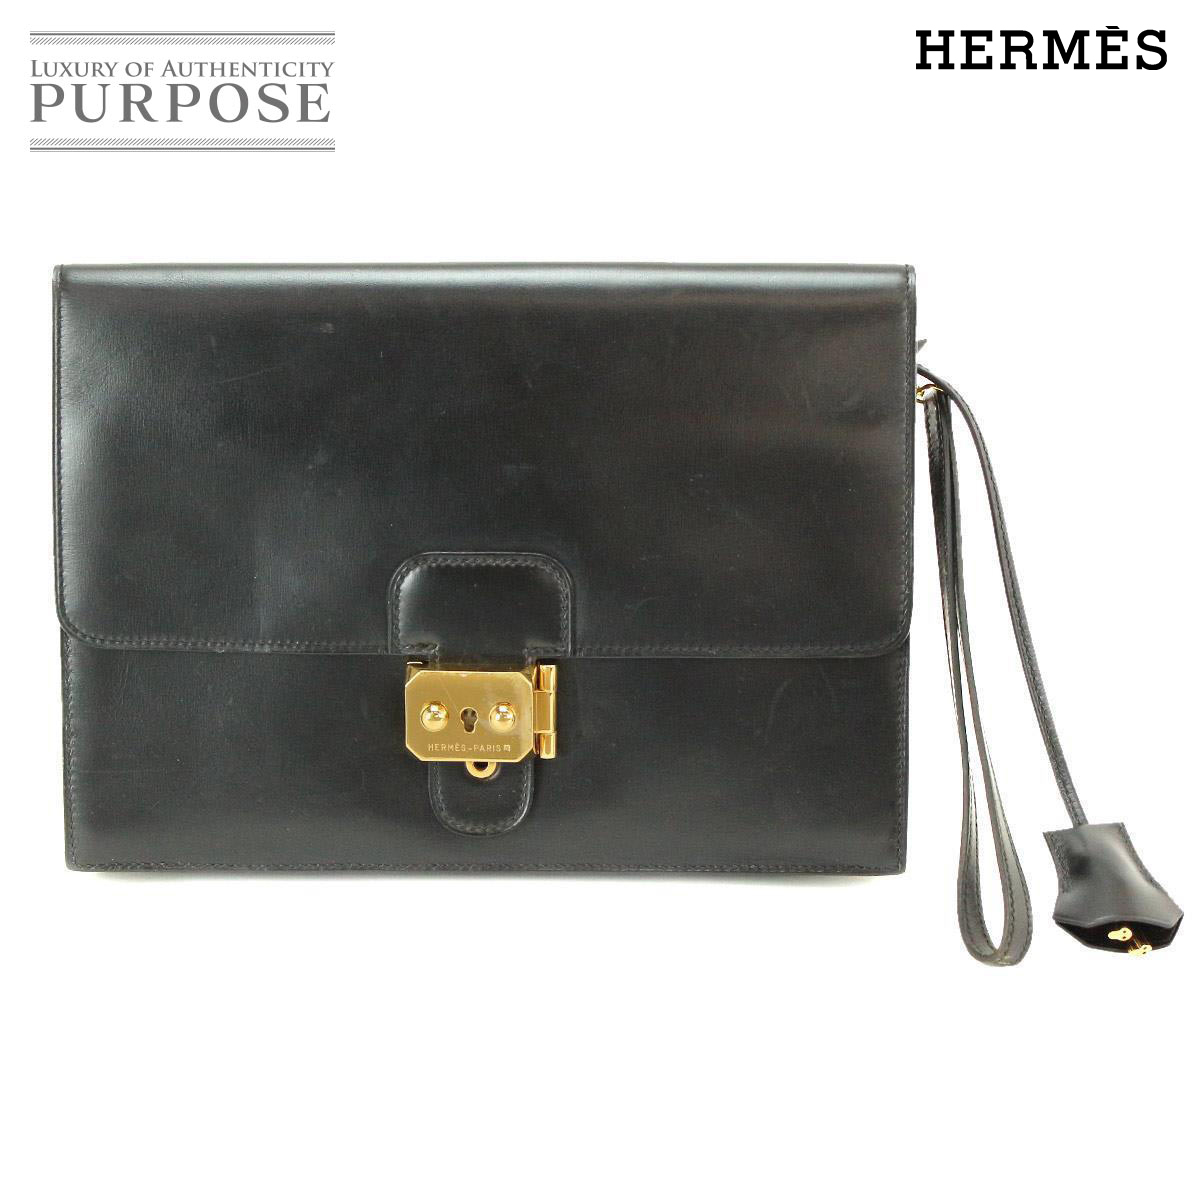 9bac10deb695 Hermes HERMES pochette jet clutch bag boxcalf leather black gold metal  fittings  used  brand